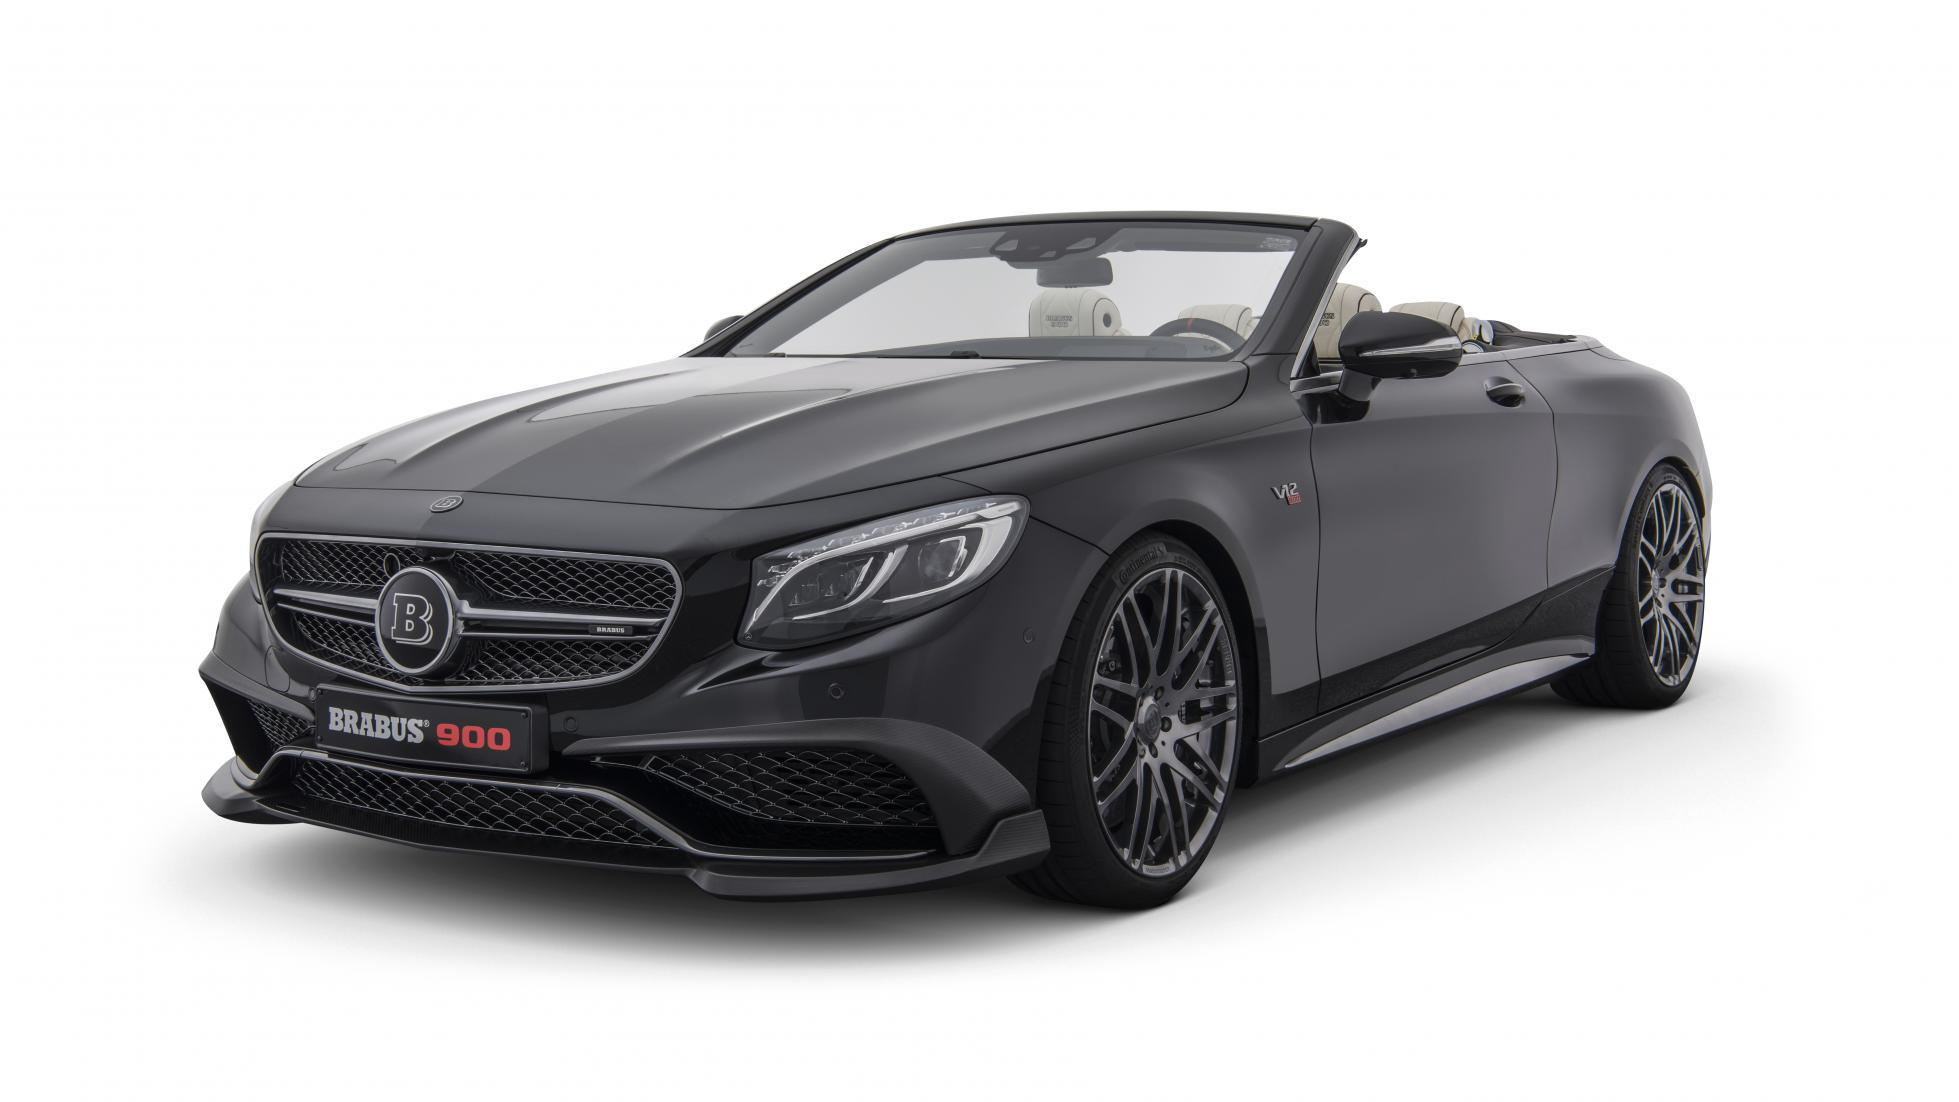 Brabus 900 Rocket based on the Mercedes-AMG S65 Cabrio